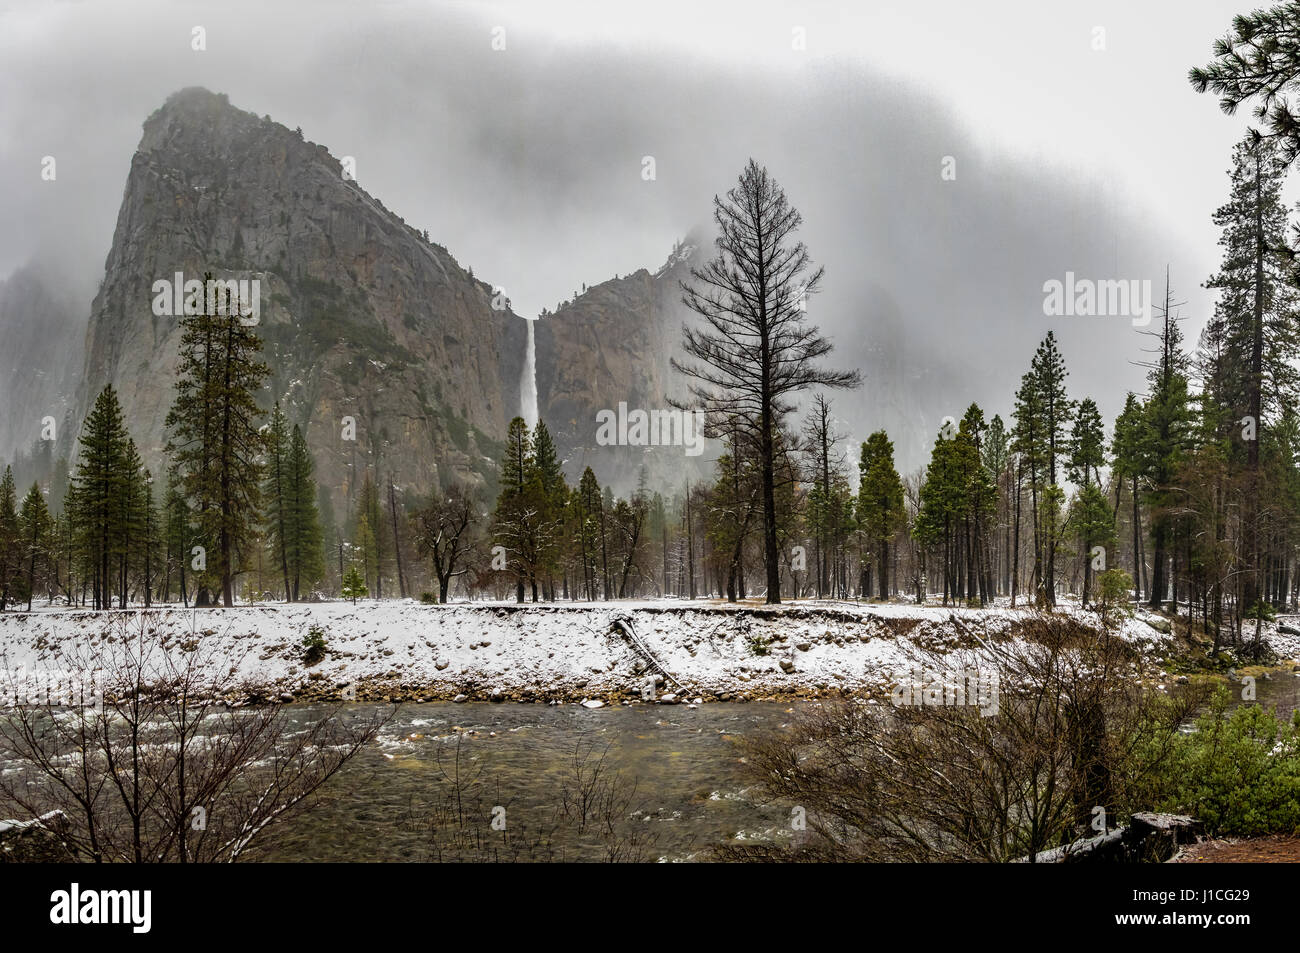 Bridalveil Fall at Winter - Yosemite National Park, California, USA - Stock Image